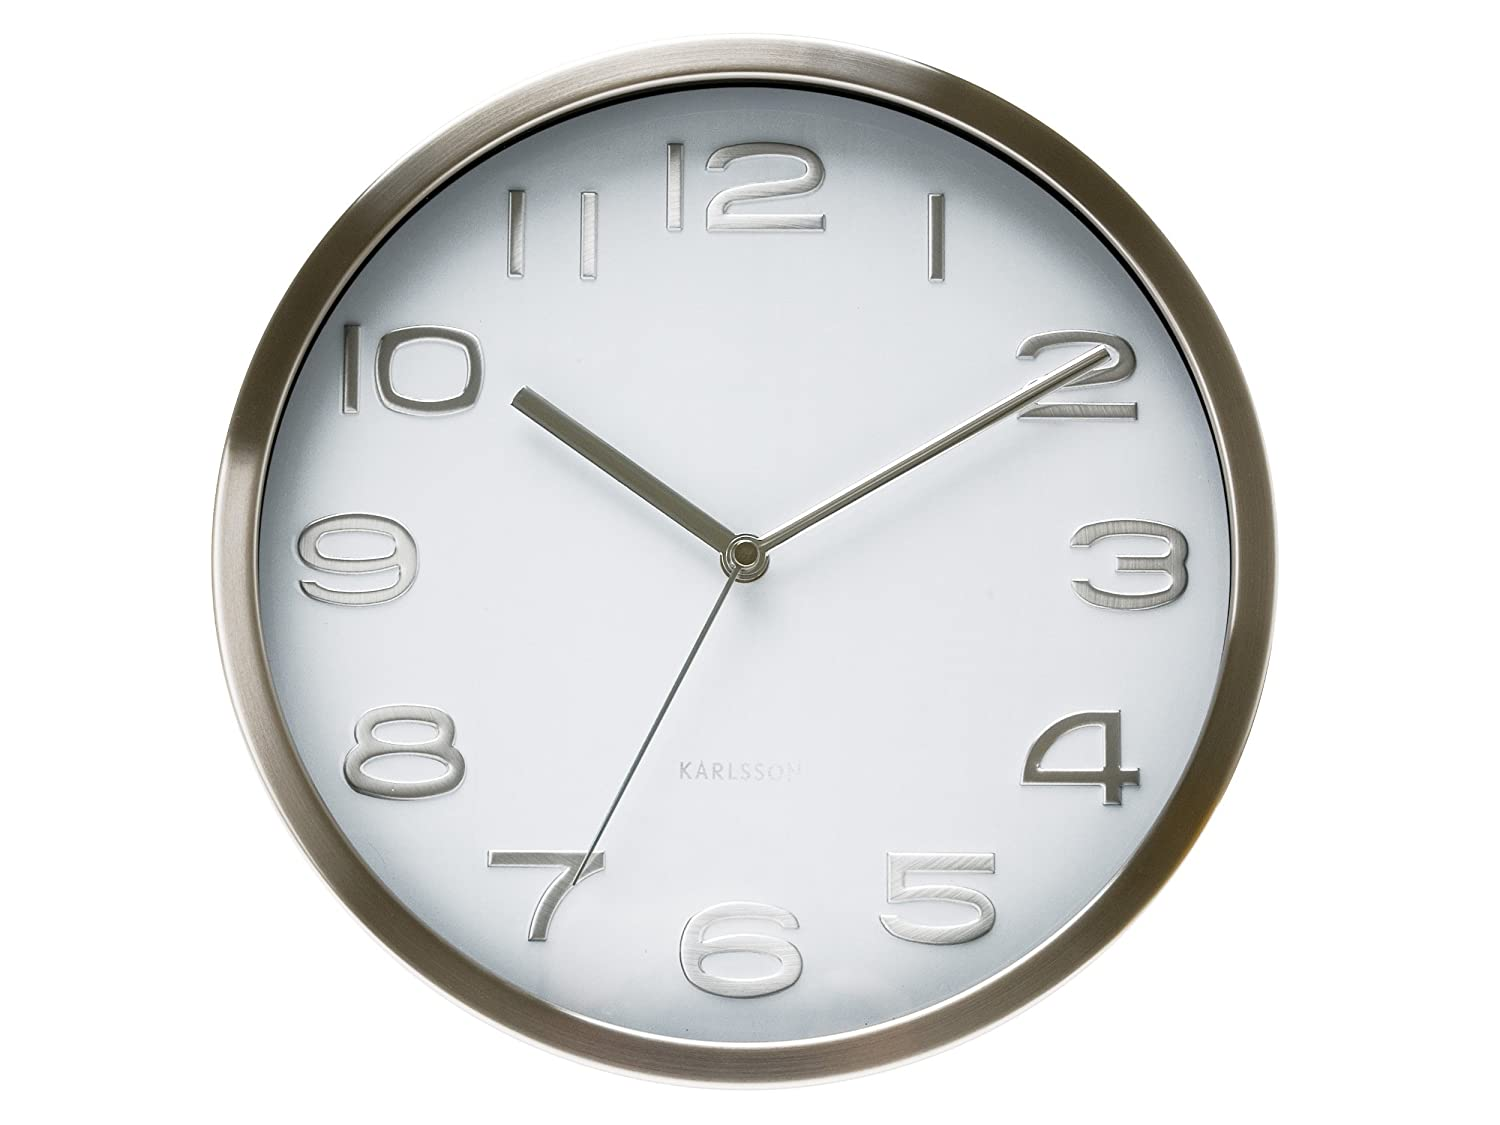 Clocks for bathroom wall - Clocks For Bathroom Wall 59